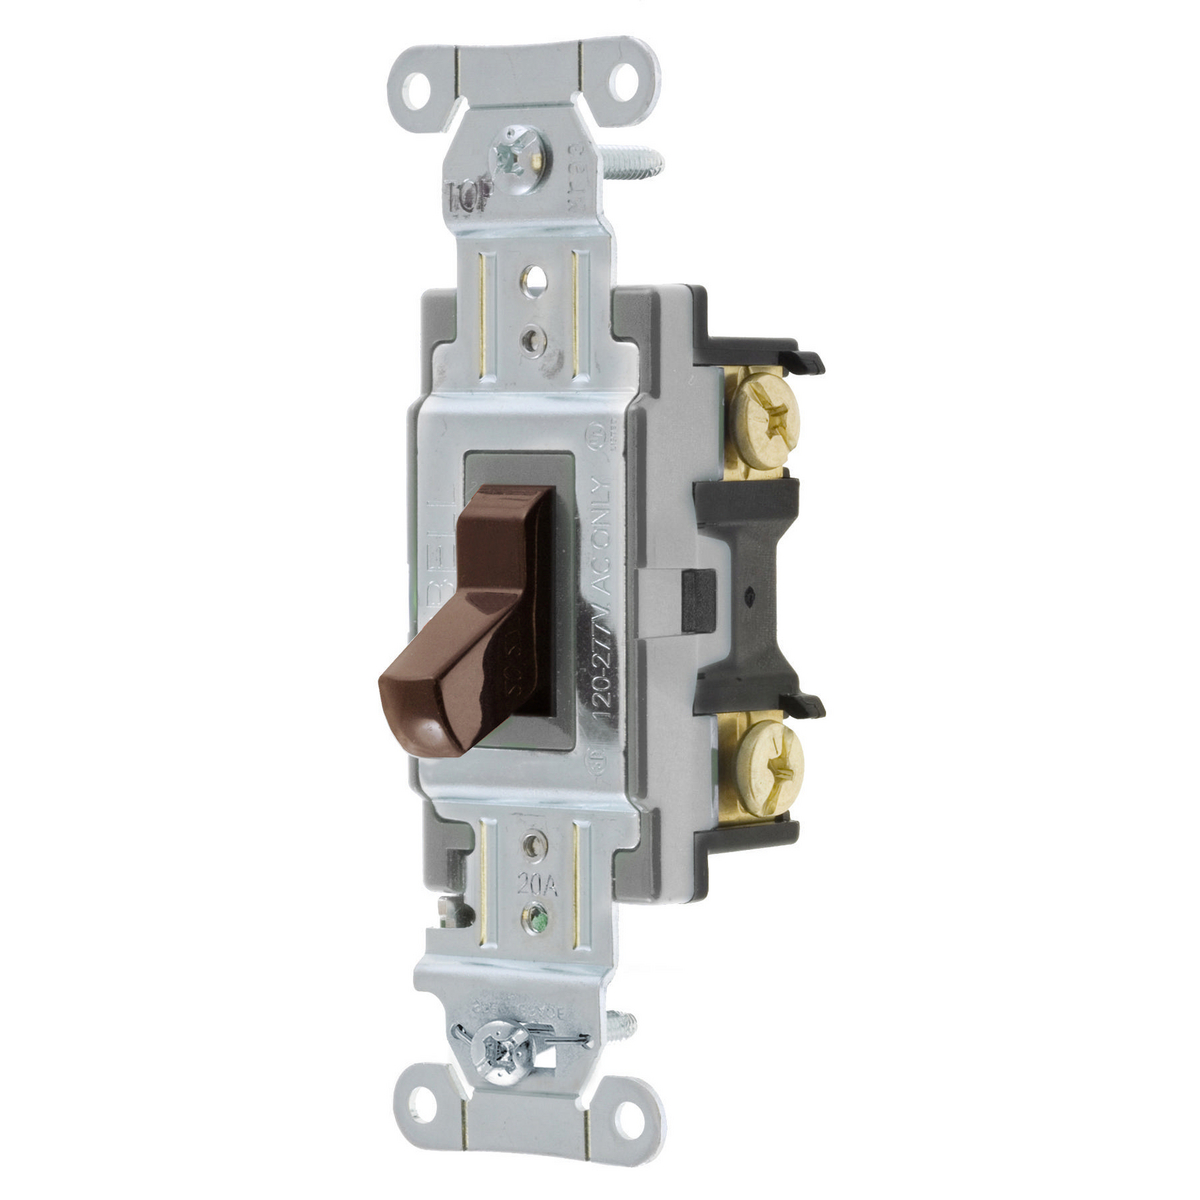 Hubbell CSB420 20 Amp 120/277 VAC 4-Way Brown Toggle Switch